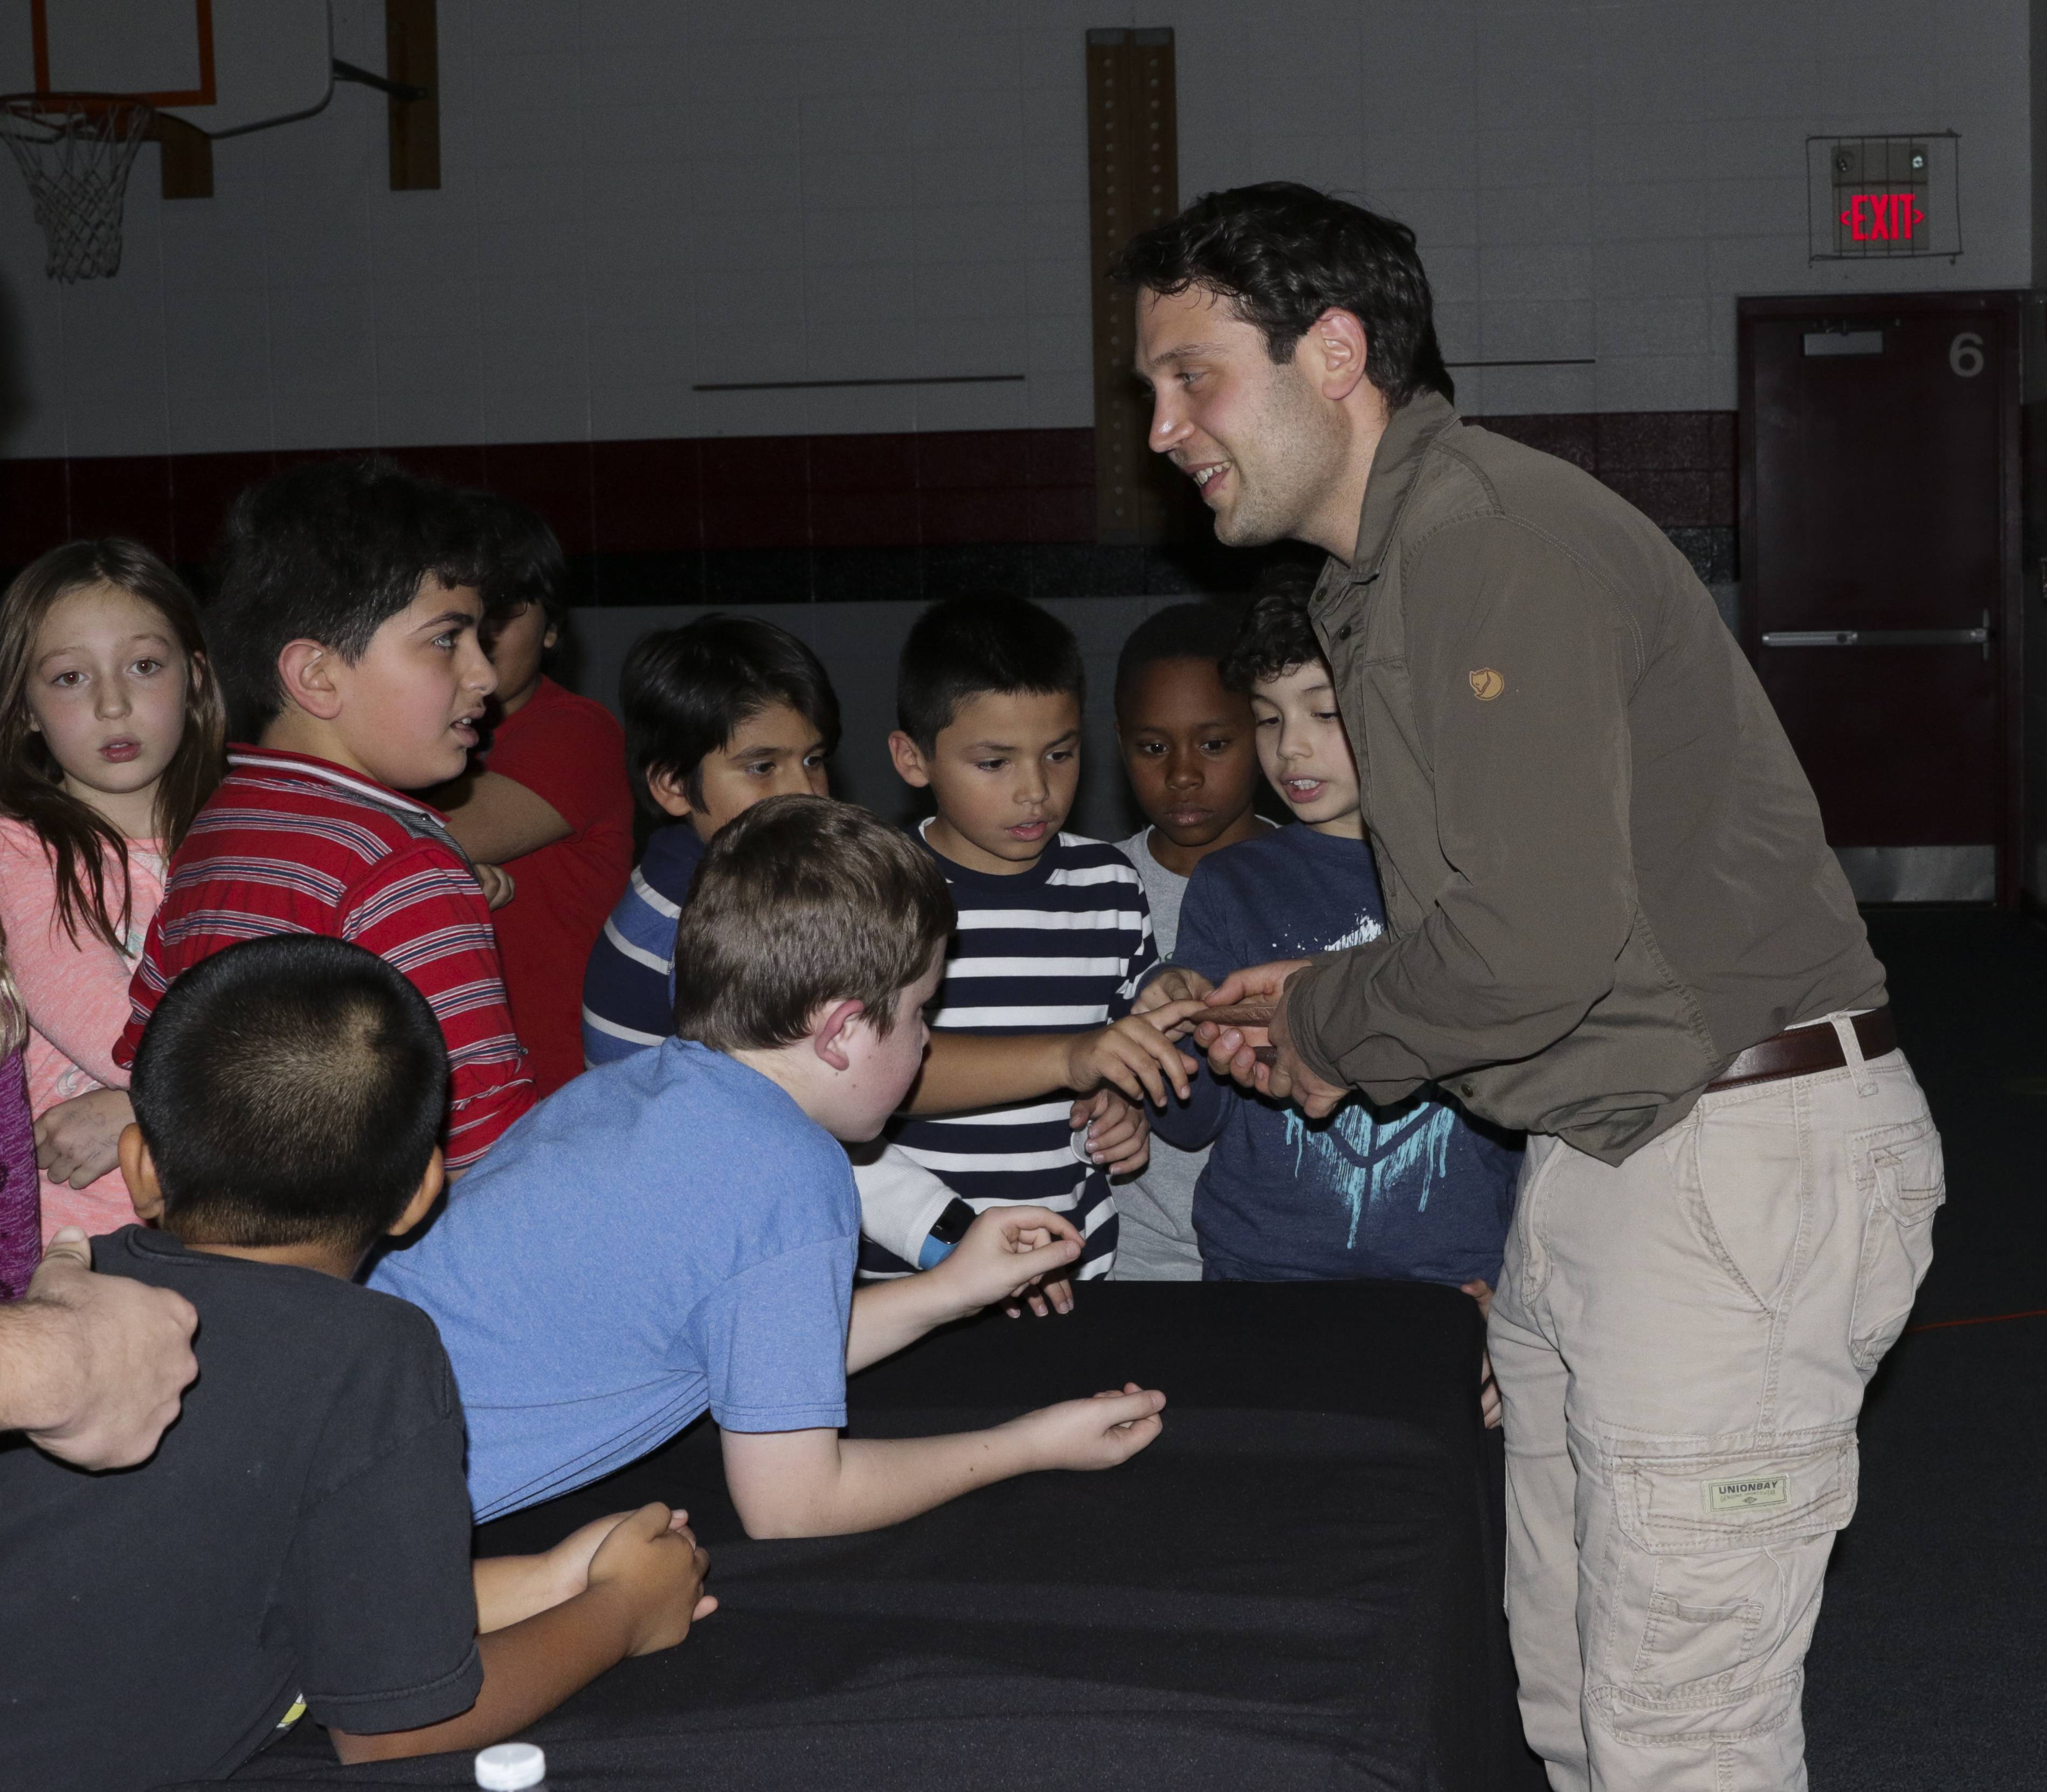 Paleontologist and National Geographic Explorer Nizar Ibrahim shows kids some dinosaur fossils at McCarty Elementary School in Aurora.